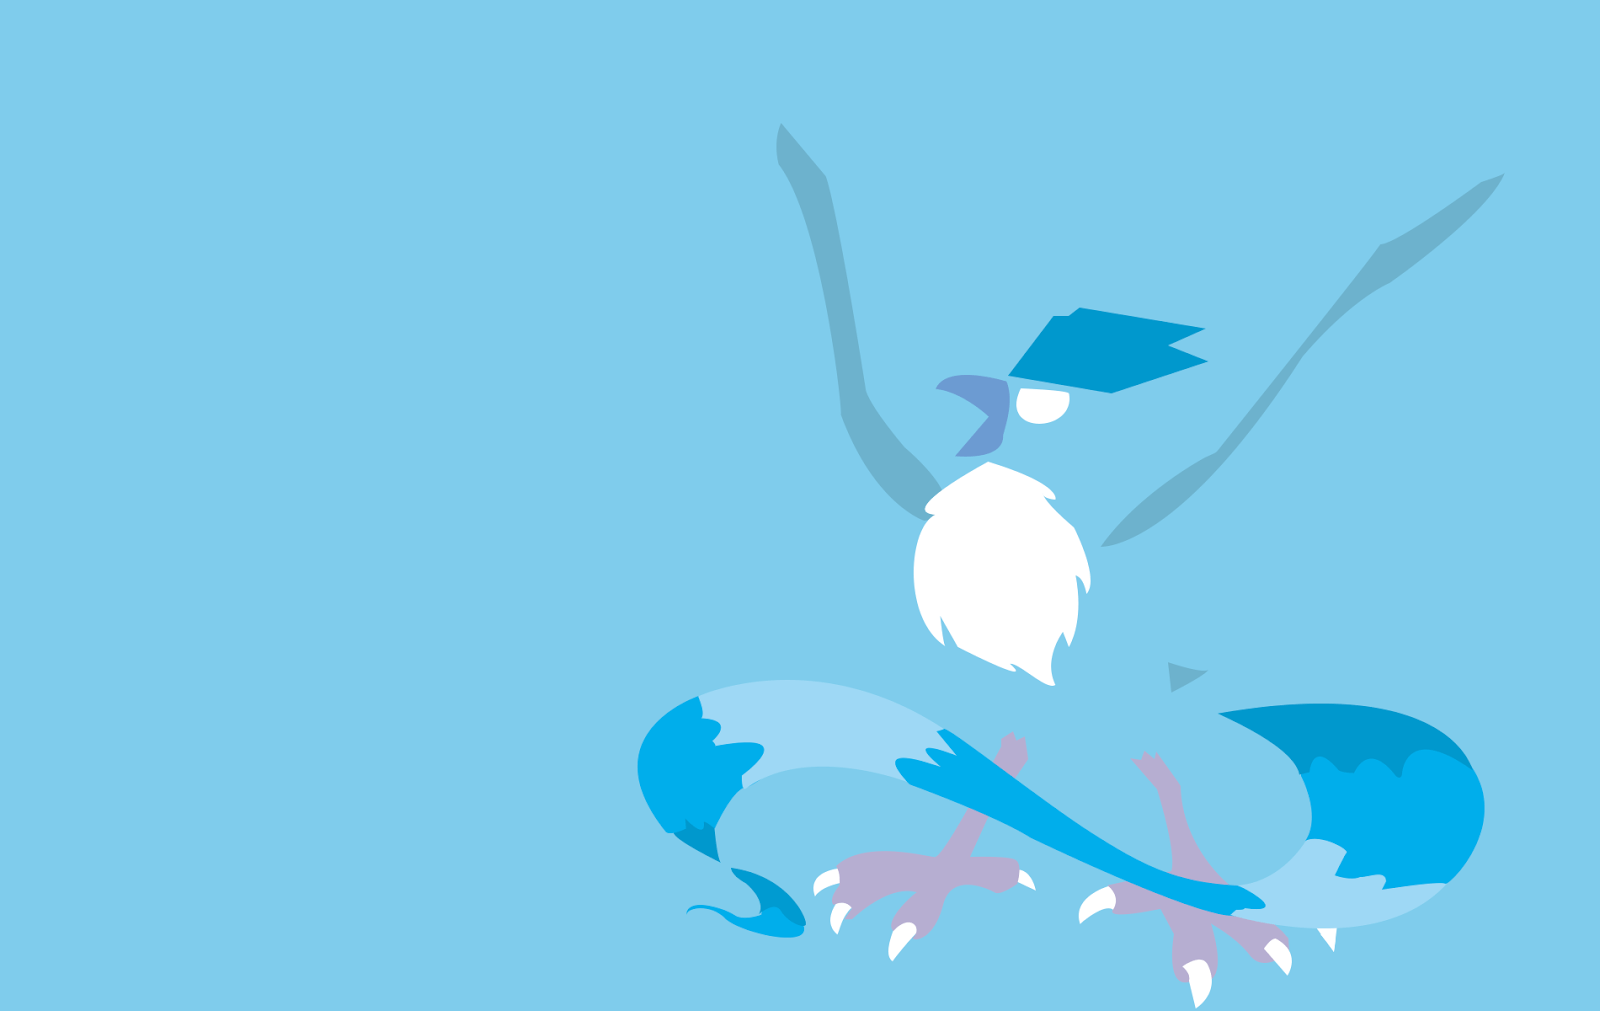 Pokémon by Review: Articuno